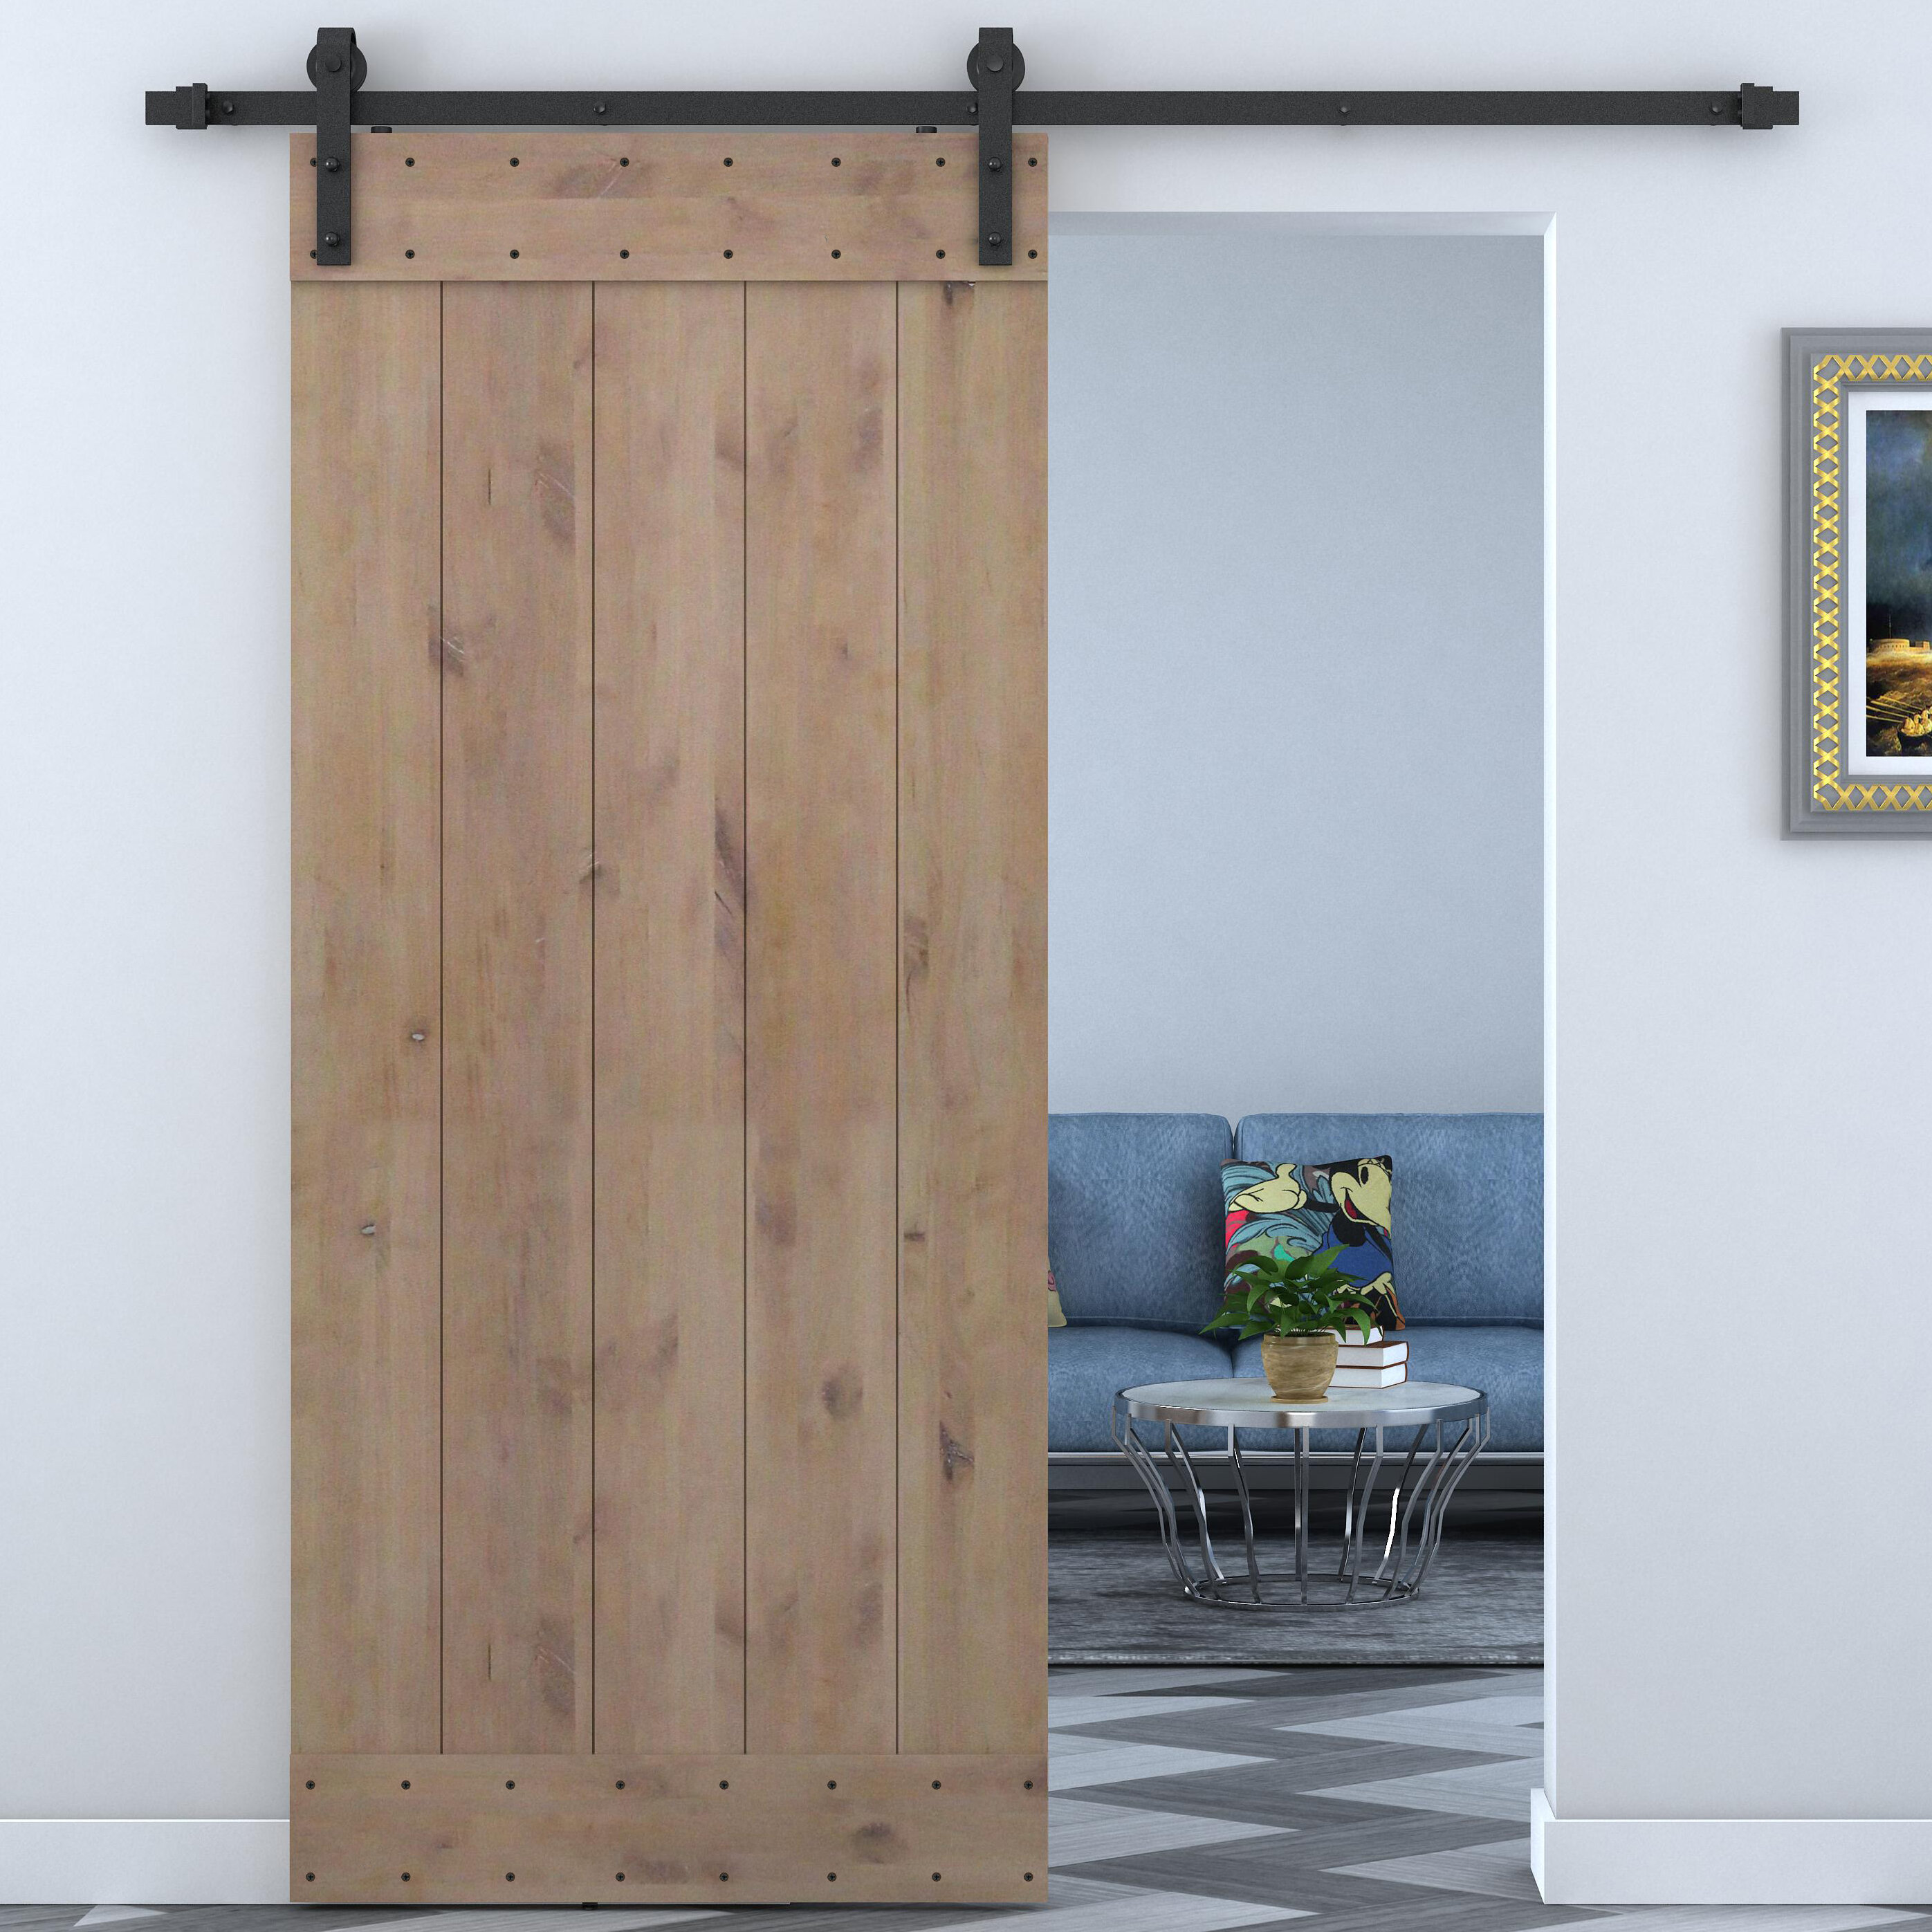 bedroom system barn info islademargarita cheap track door interior hardware sliding double